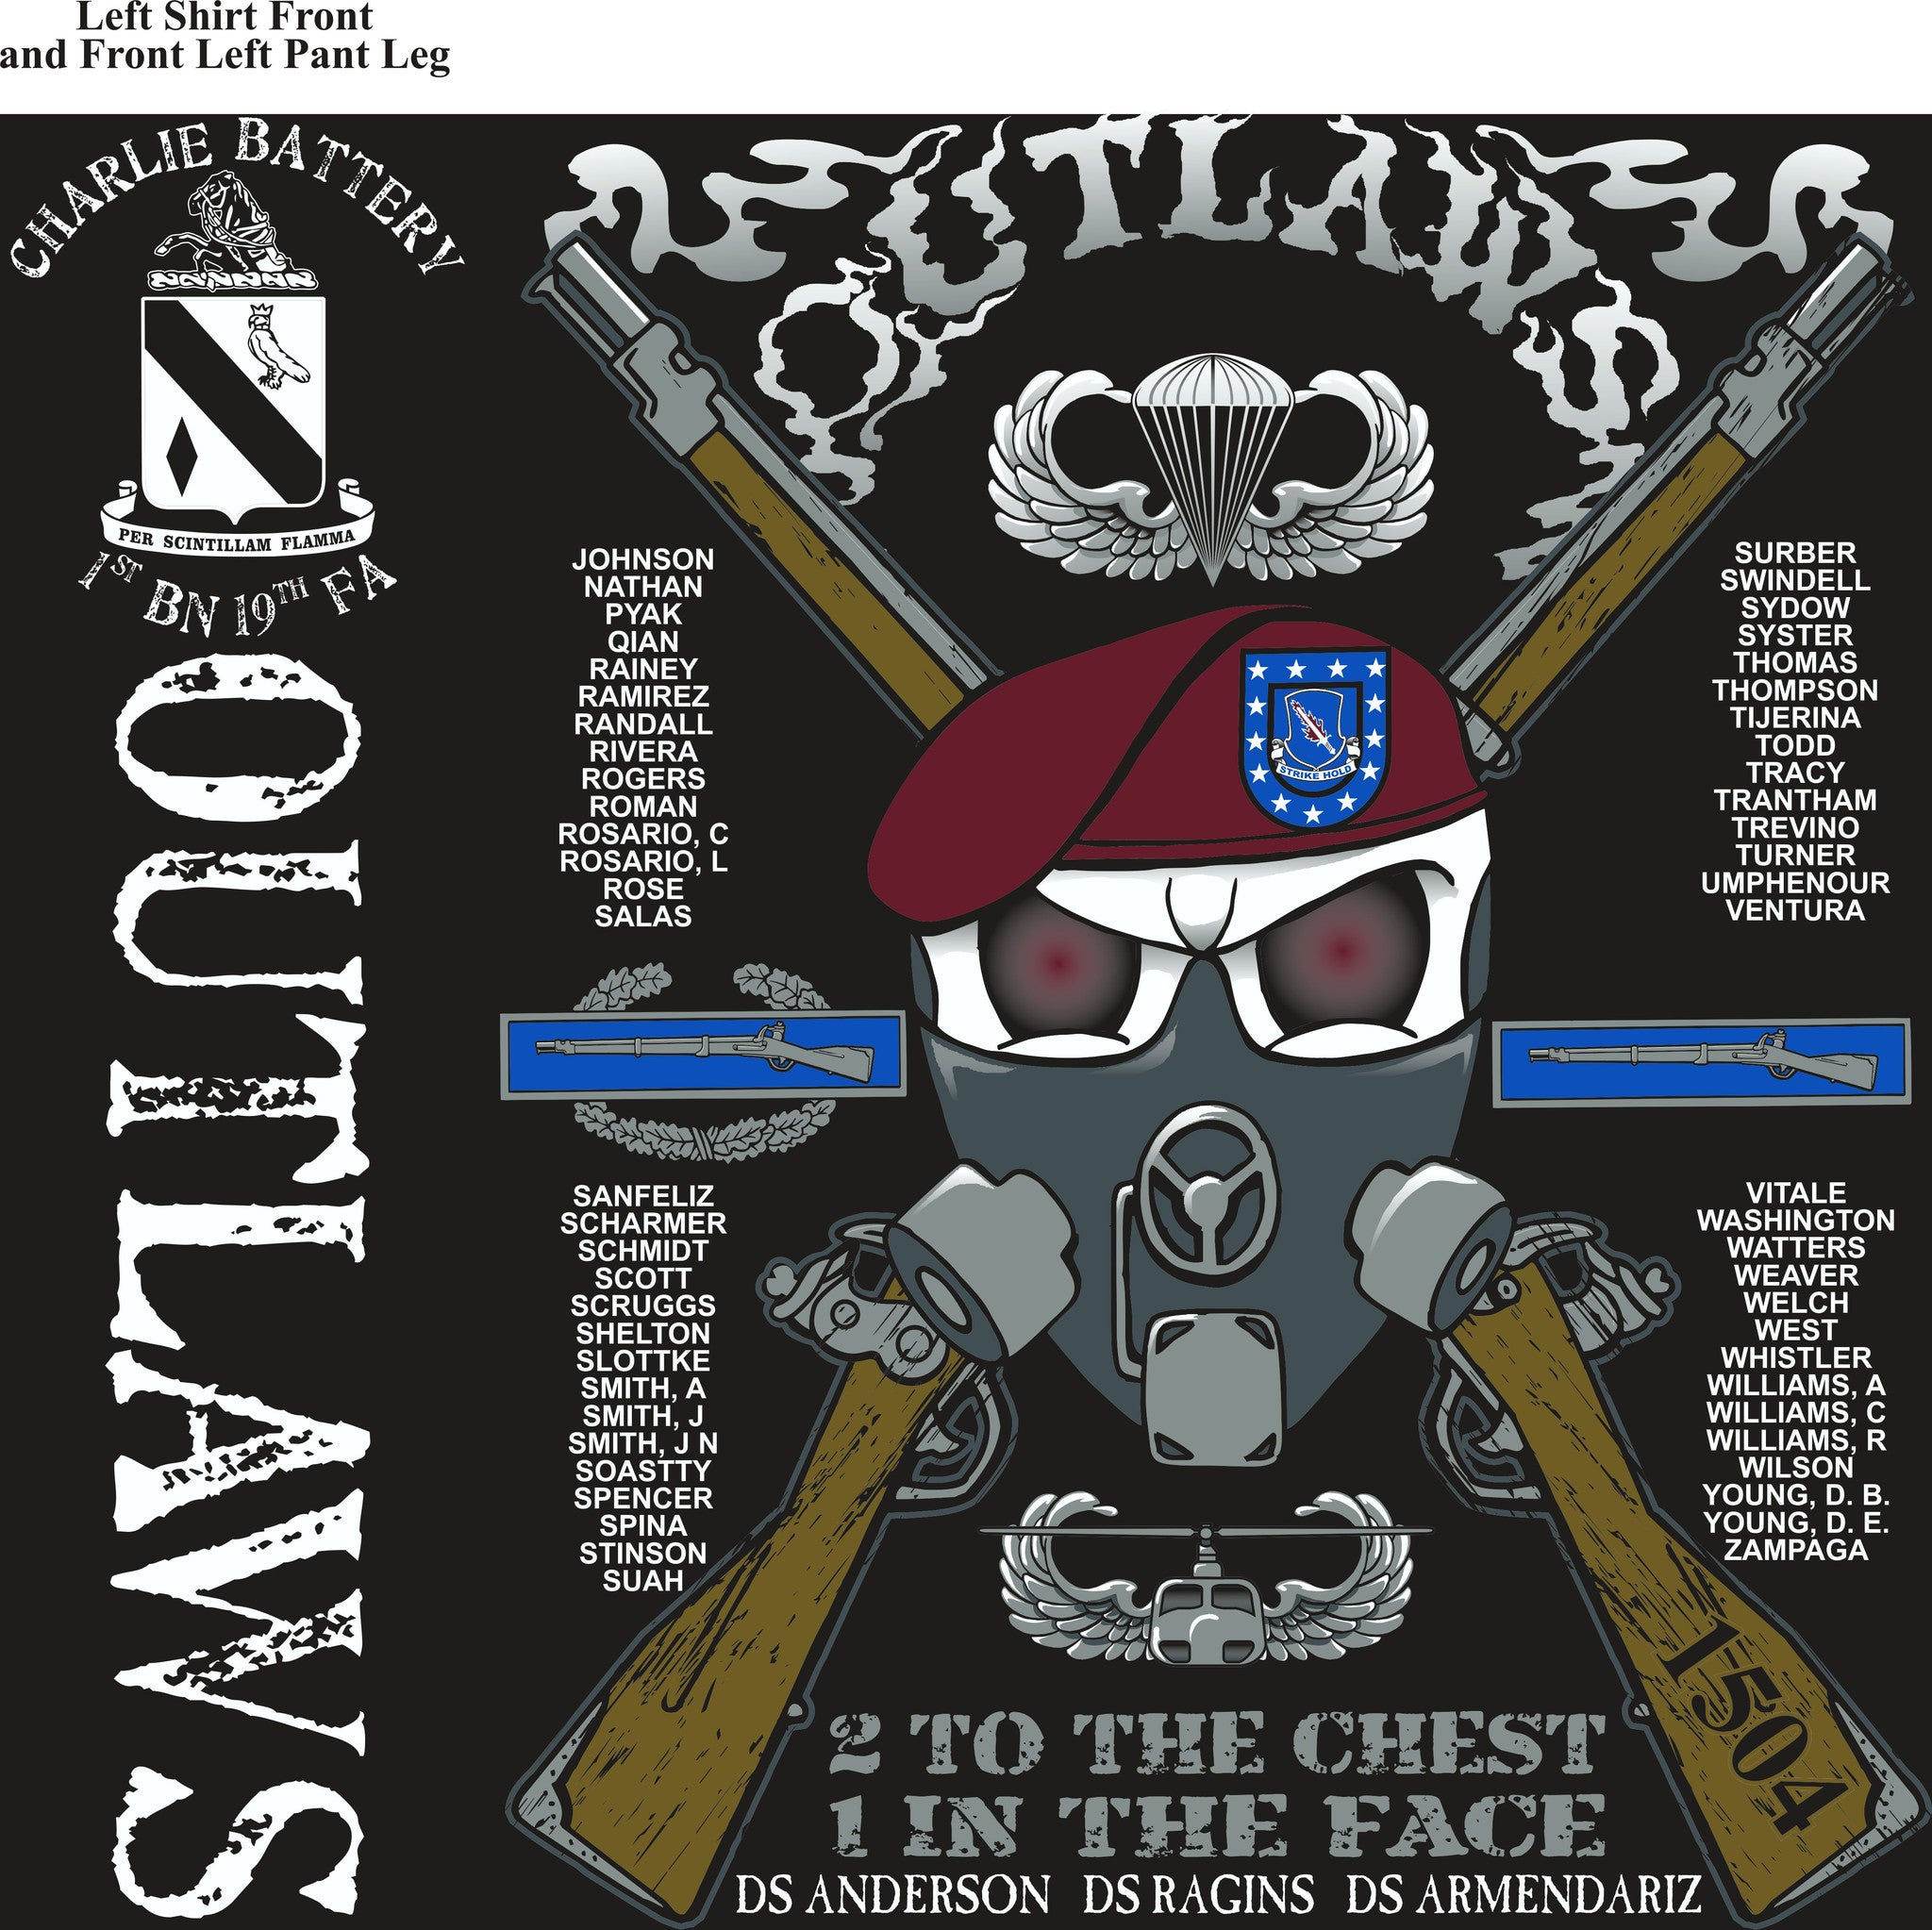 PLATOON SHIRTS (2nd generation print) CHARLIE 1st 19th OUTLAWS DEC 2016